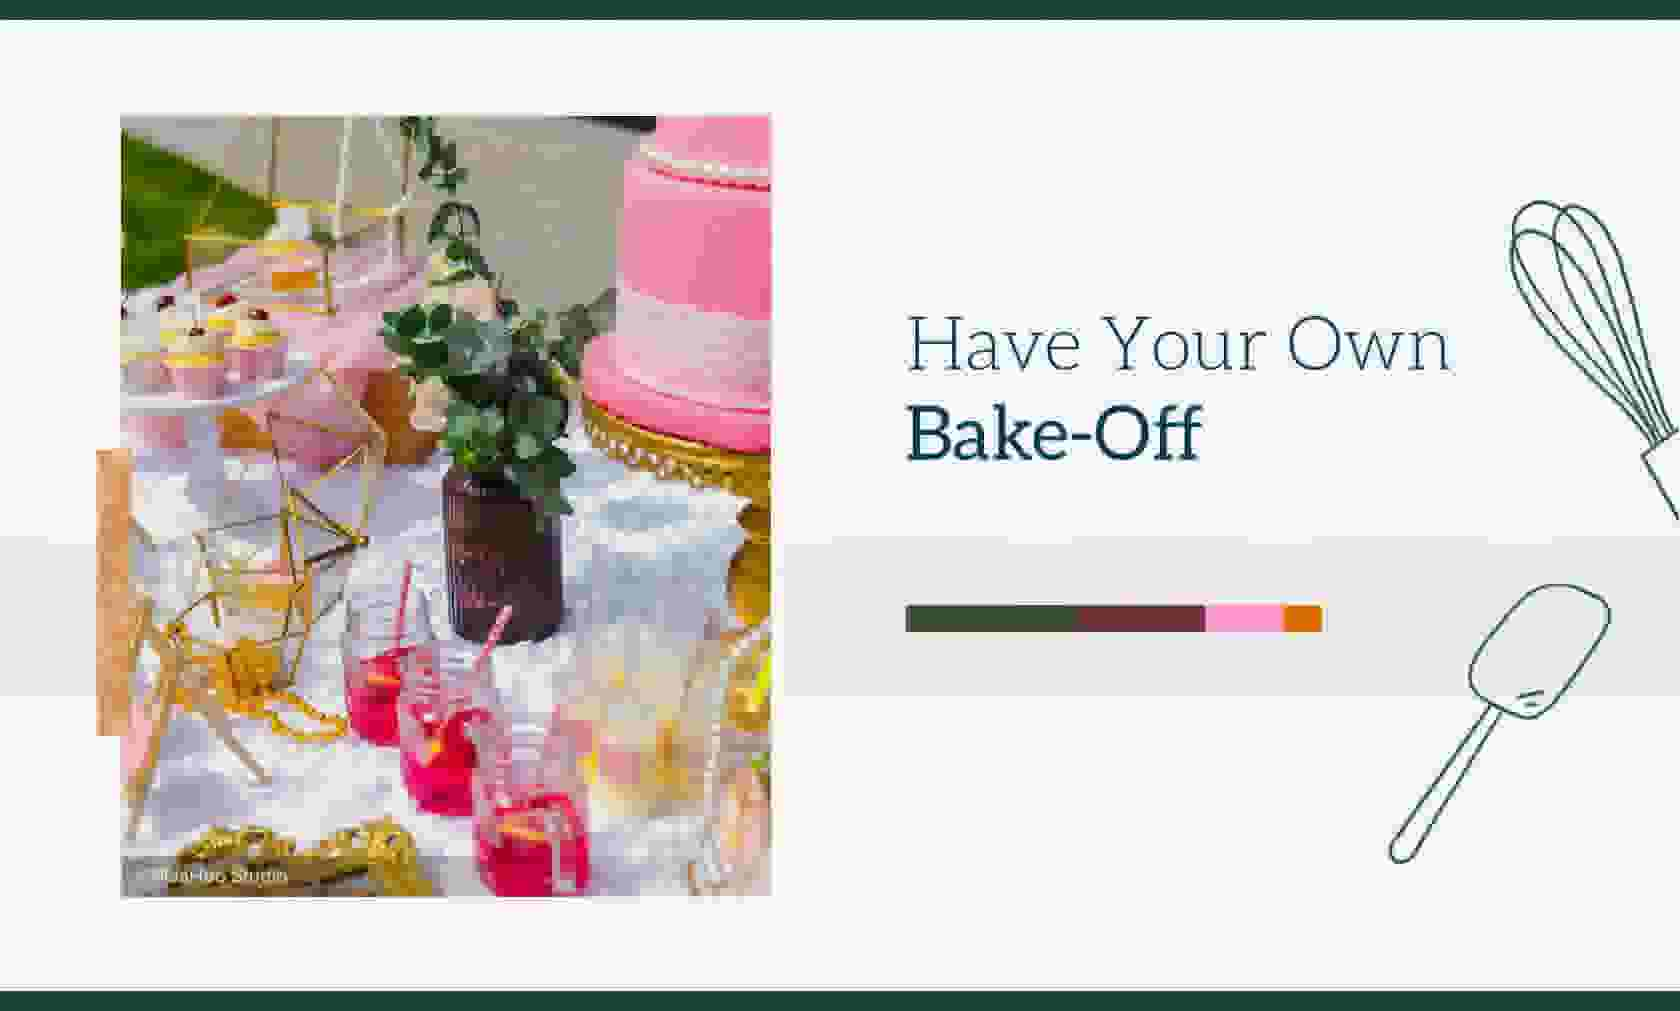 Have Your Own Bake-Off